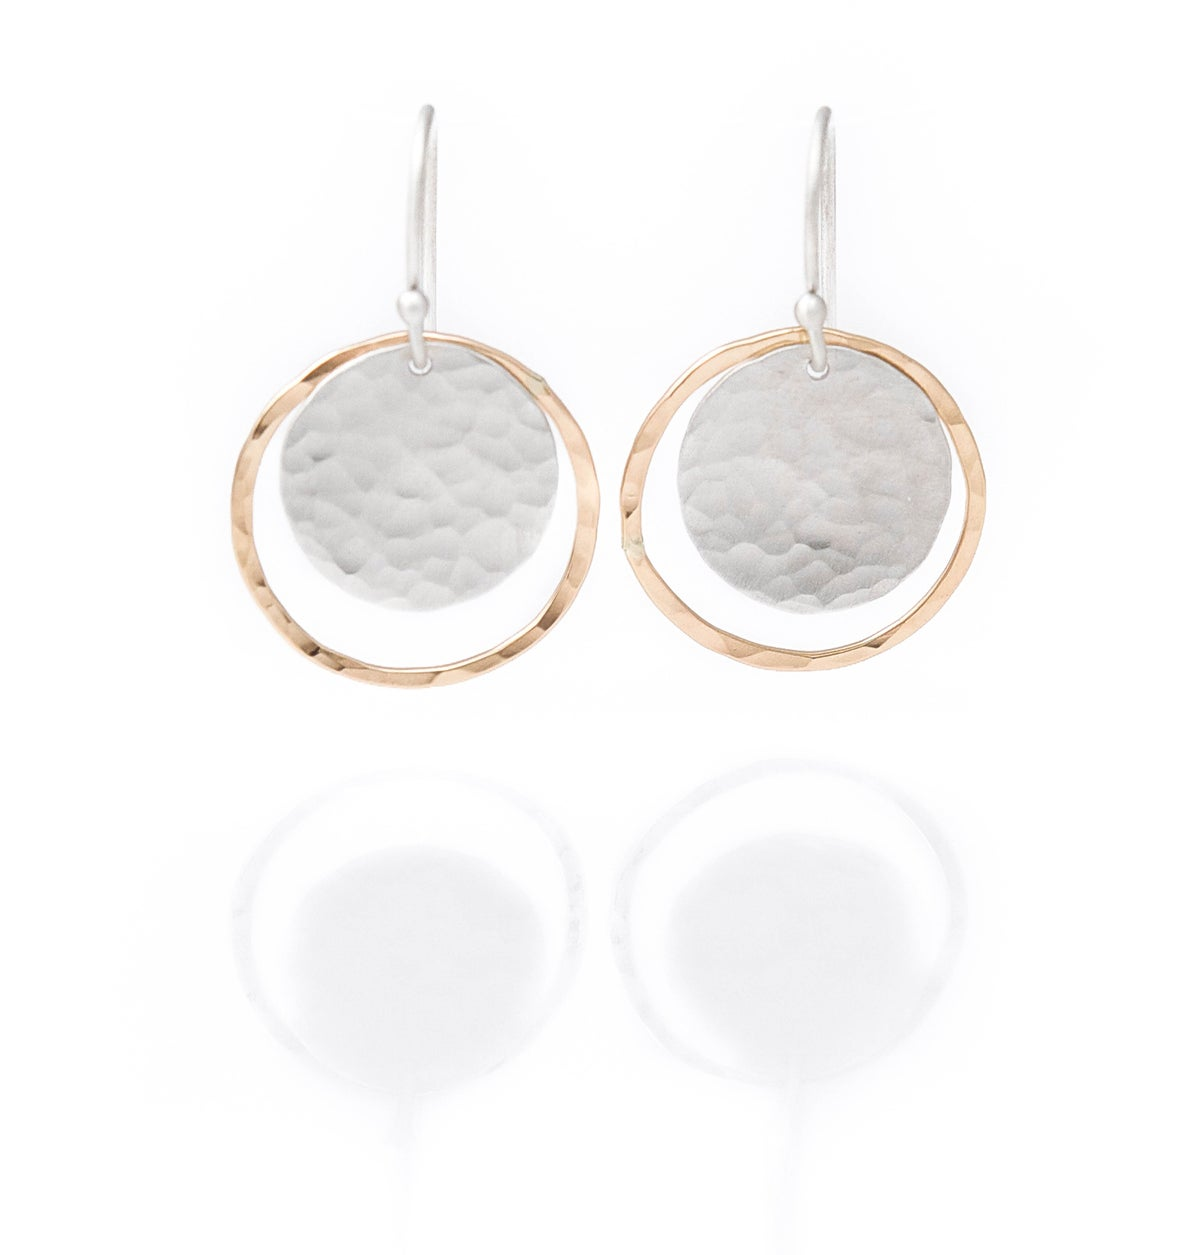 Image of Halo Earrings